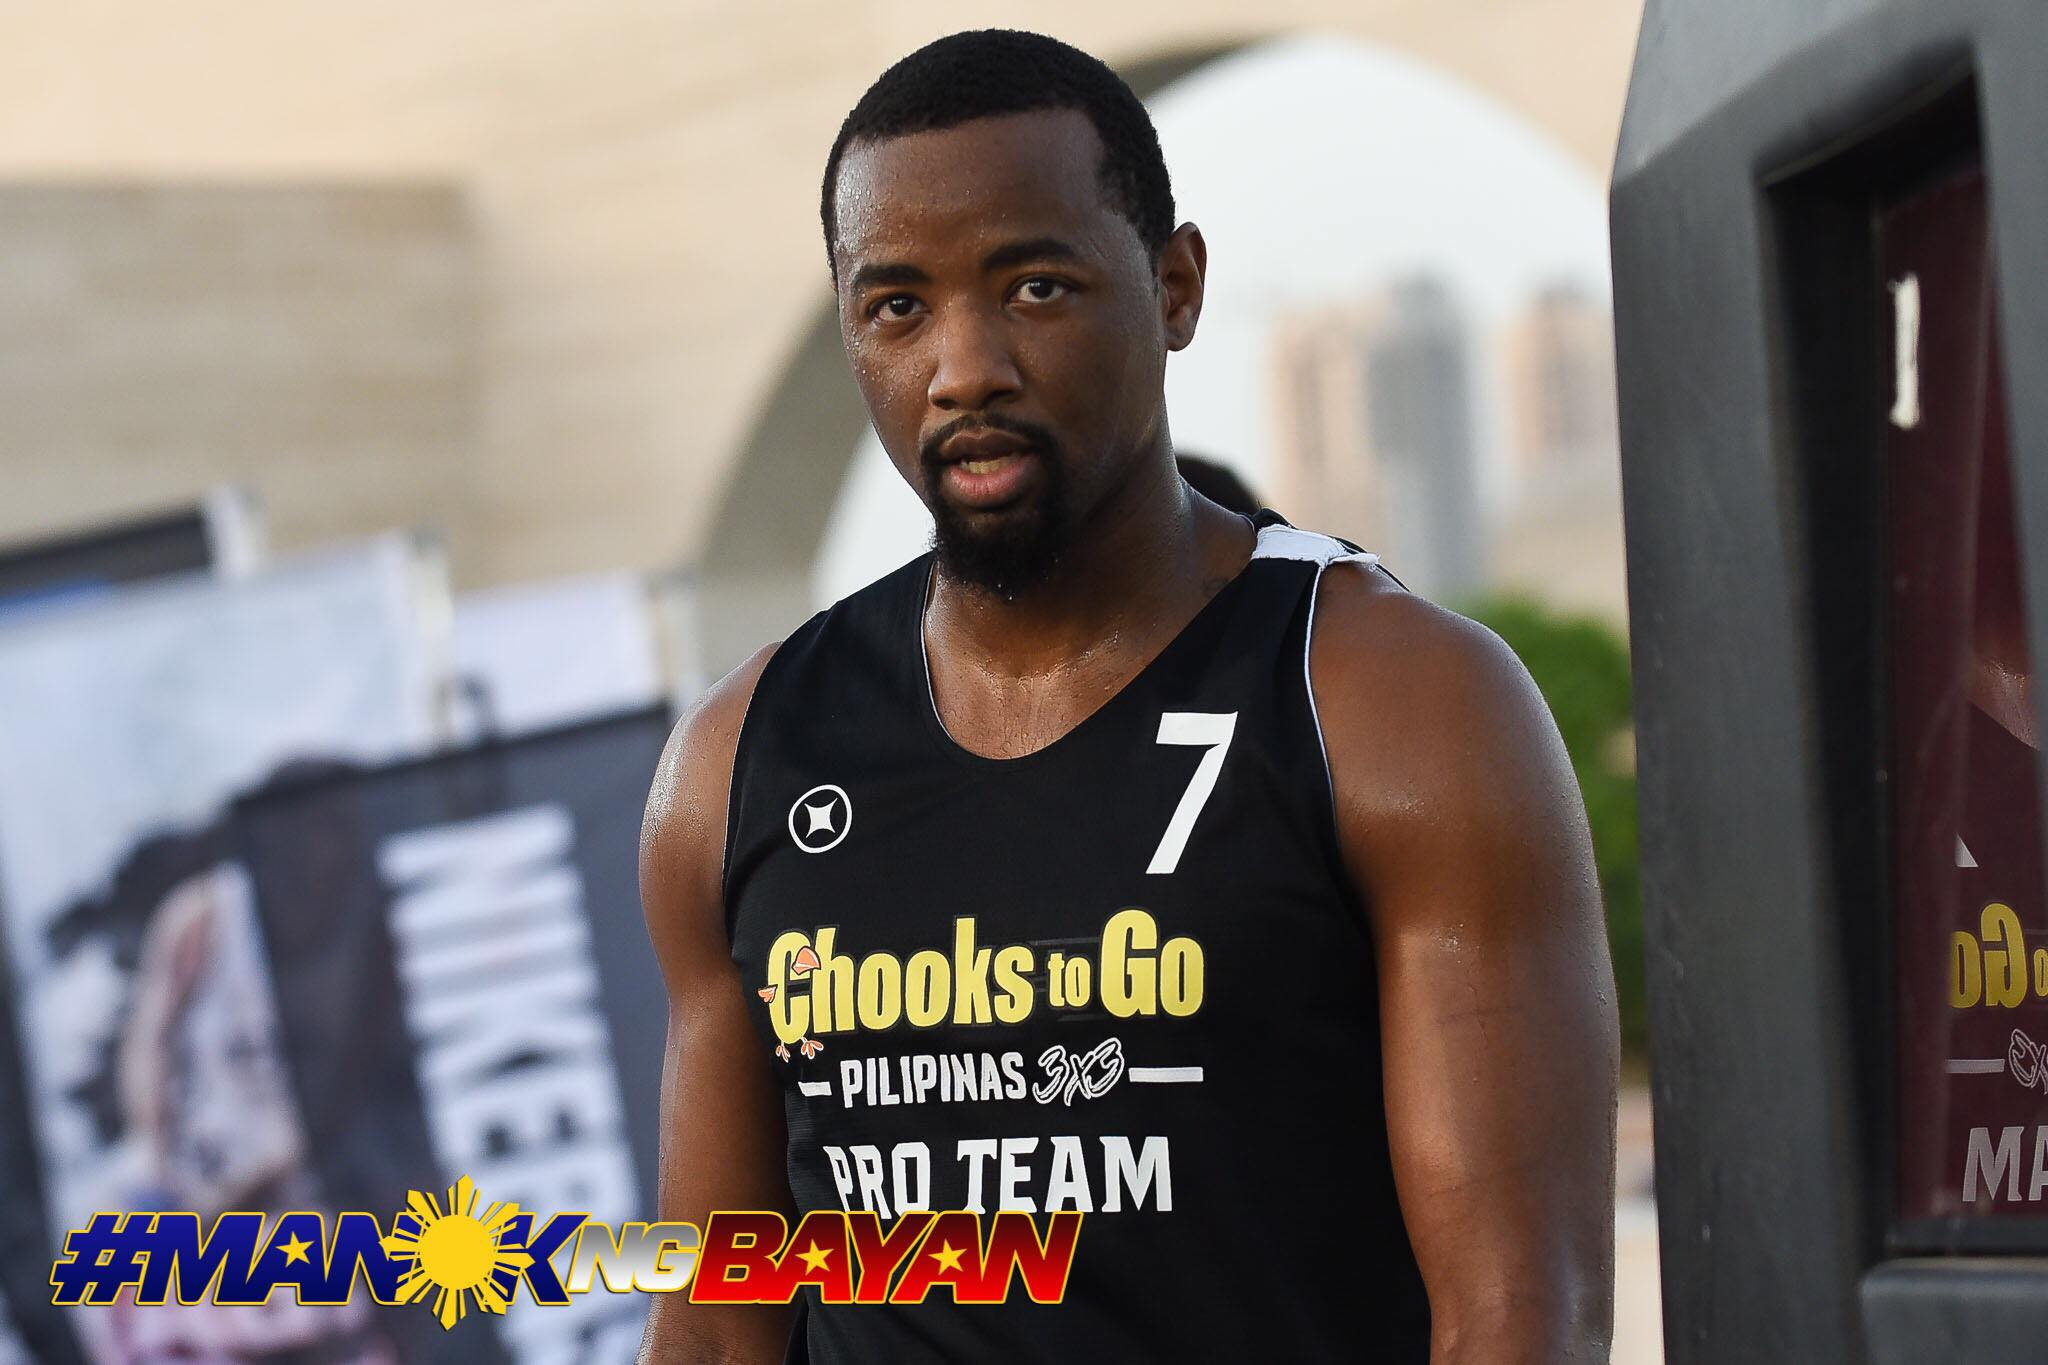 Tiebreaker Times Travis Franklin, Balanga Chooks end Bucharest campaign on high note 3x3 Basketball Chooks-to-Go Pilipinas 3x3 News  Travis Franklin Lamar Roberson Kochenevo Karl Dehesa Chris De Chavez Balanga Chooks 2019 Chooks-to-Go Pilipinas 3x3 Season 2019 Bucharest Challenger